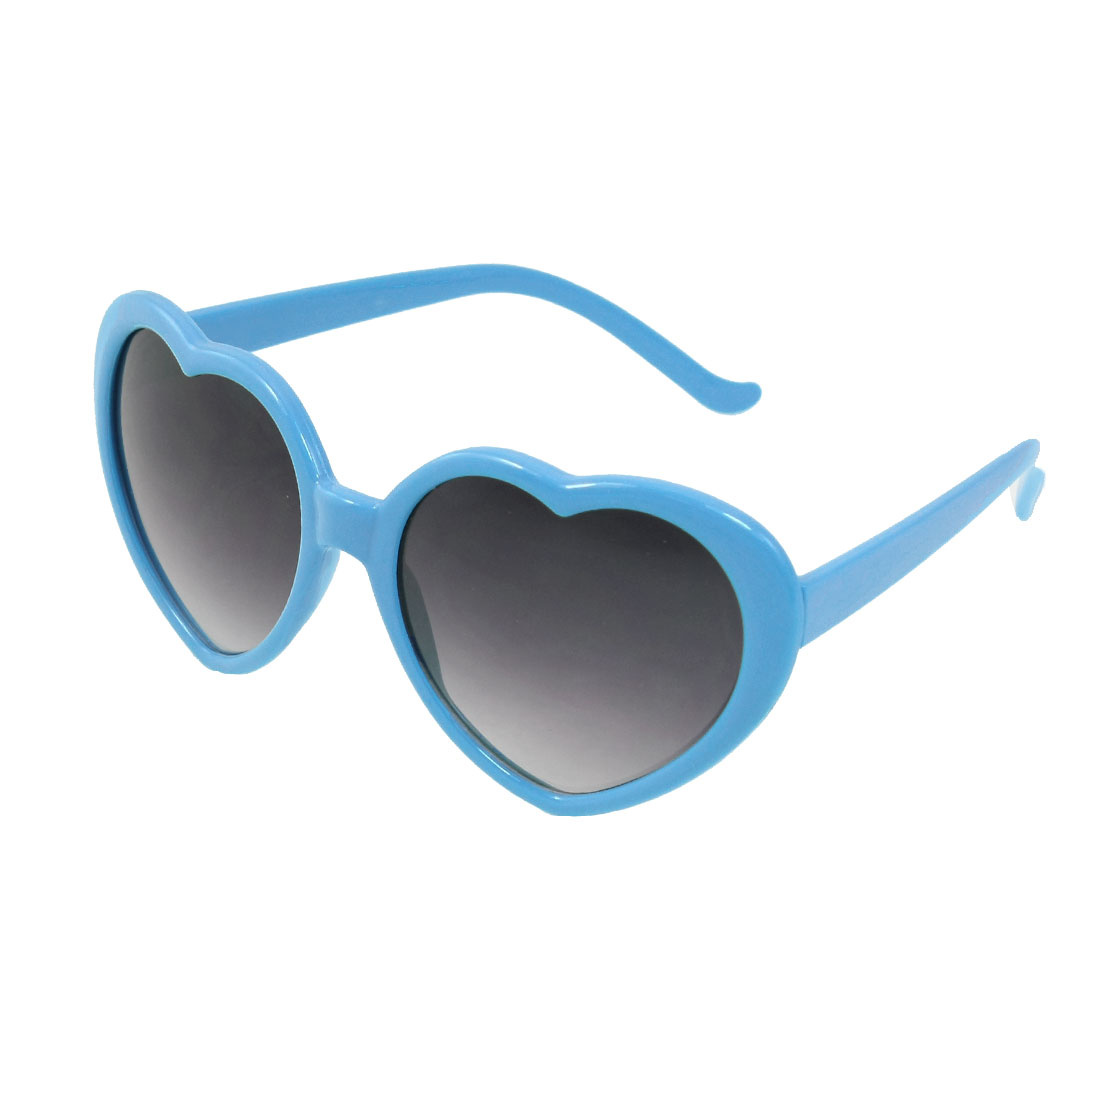 Child Smooth Plastic Arms Sky Blue Heart Shaped Frame Sunglasses